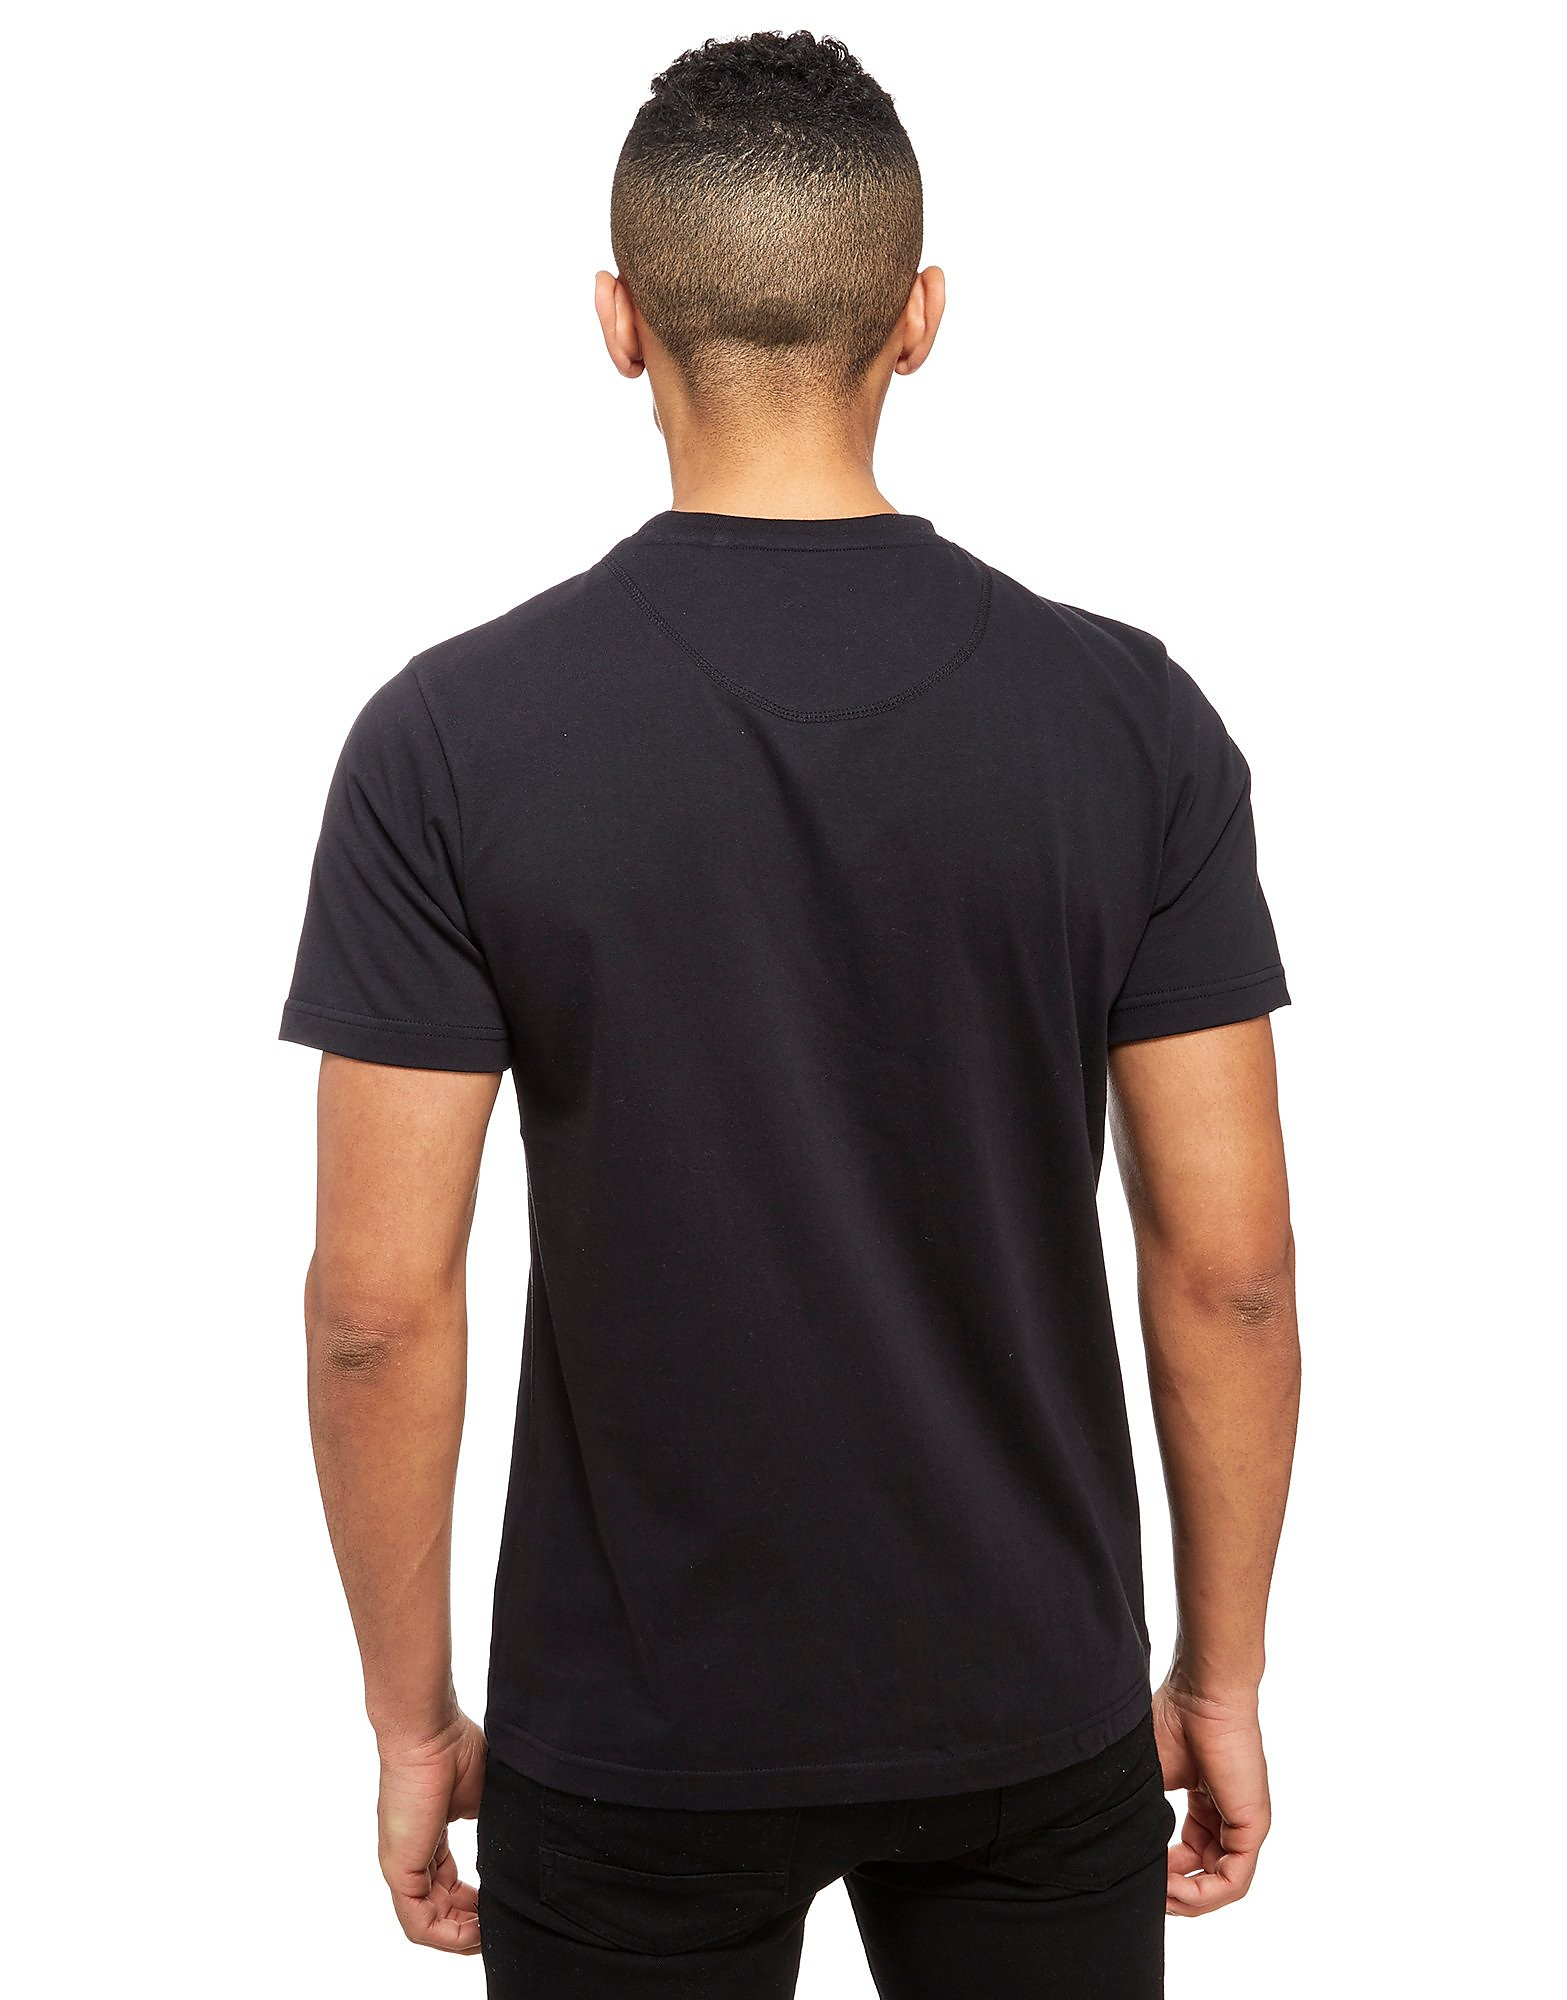 Berghaus Block 9 T-Shirt